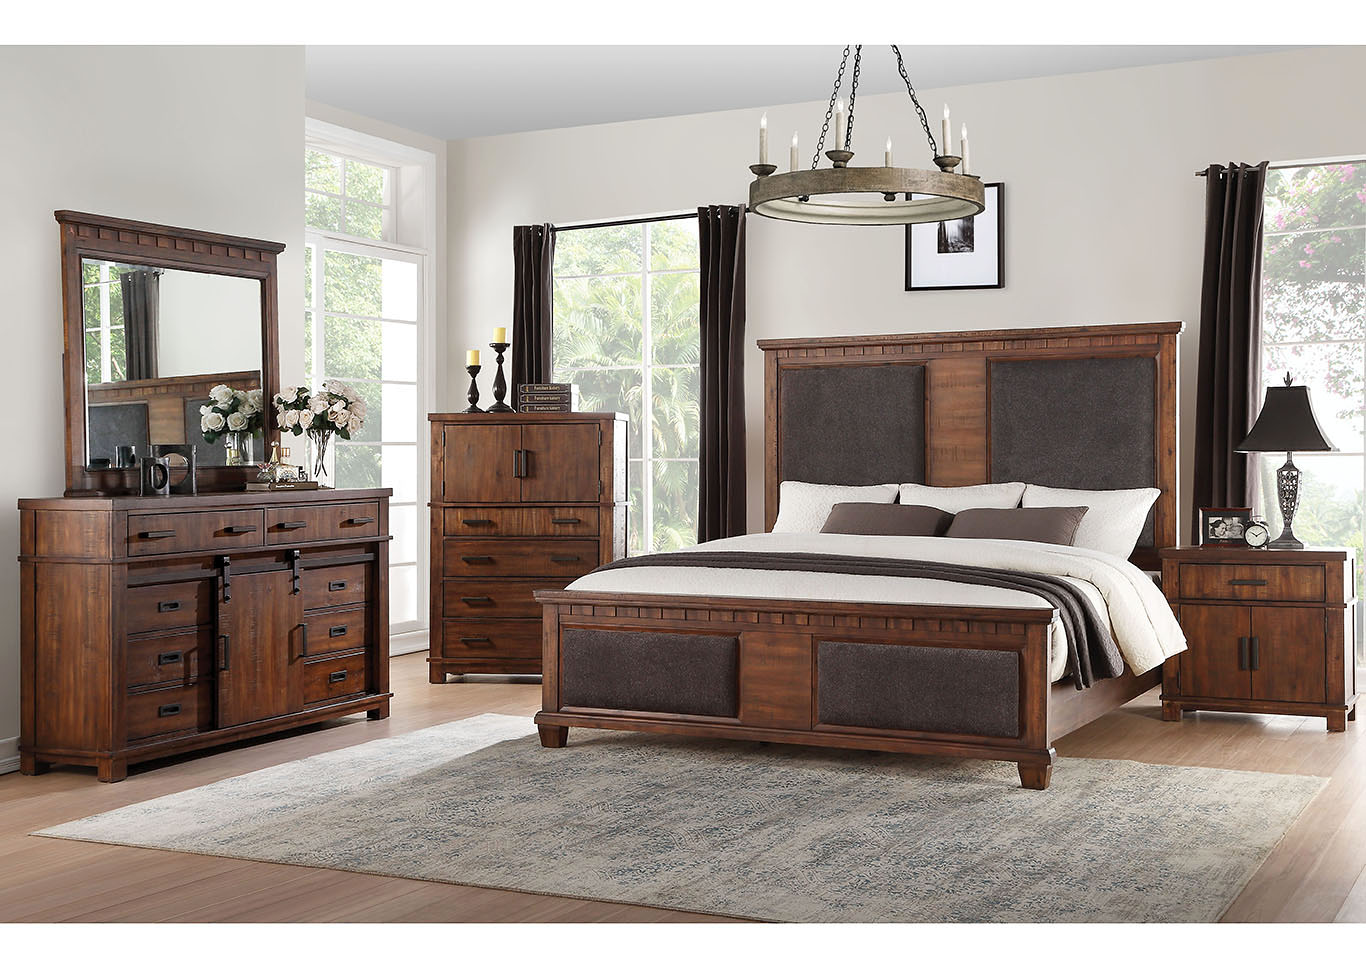 Vibia Cherry Oak Queen Platform Bed w/Dresser and Mirror,Acme